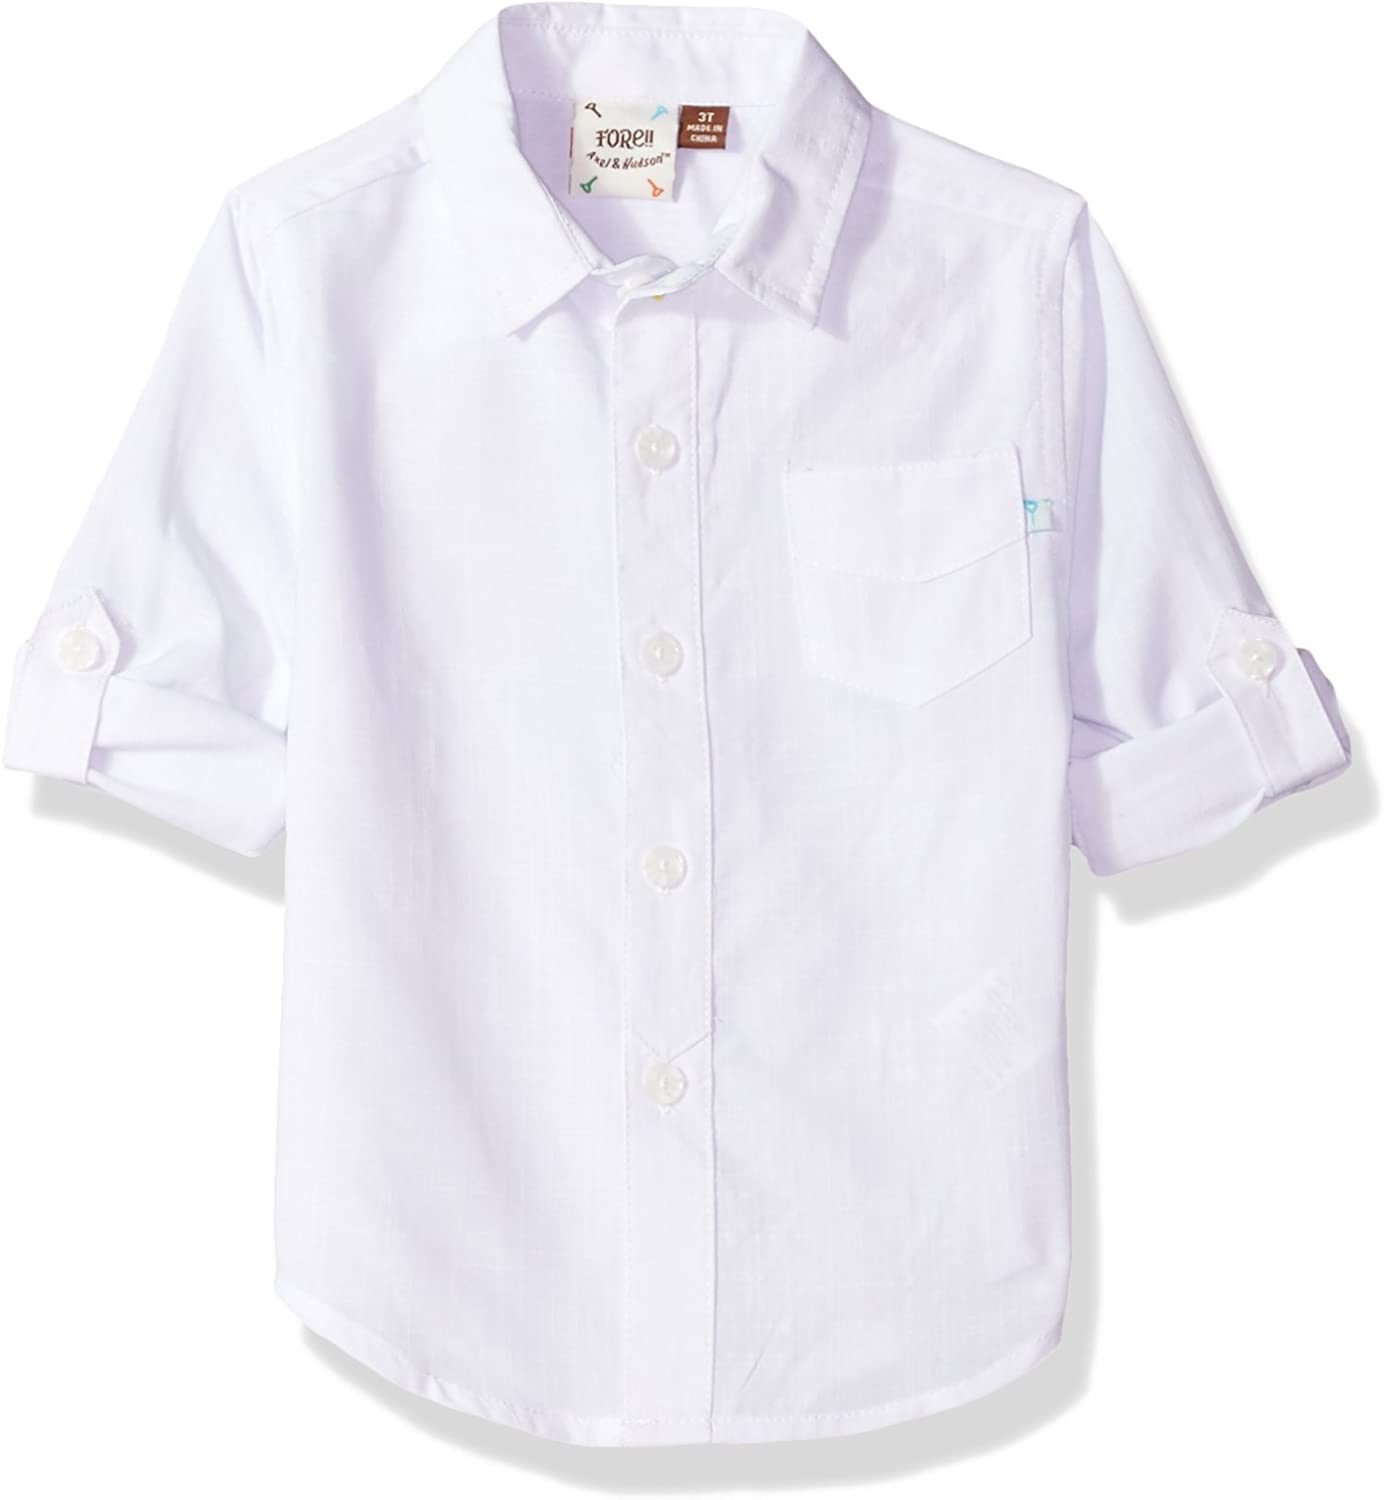 Fore Miami Mall Axel Hudson Boys' Cuff Max 40% OFF Shirt White Rolled